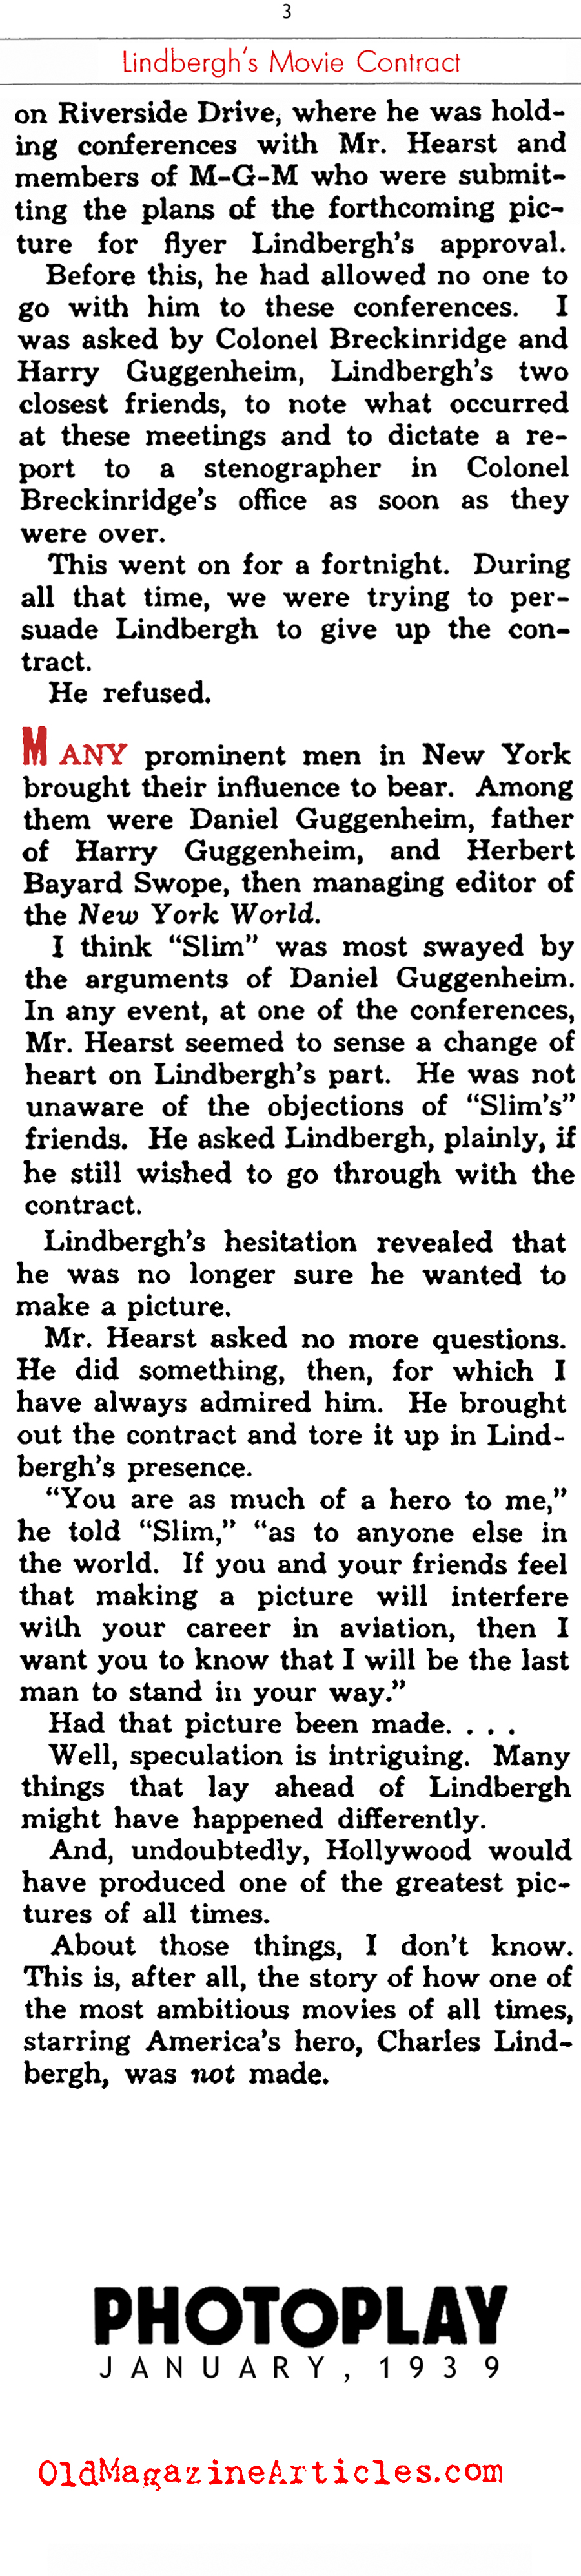 Lindbergh's Movie Contract (Photoplay Magazine, 1939)